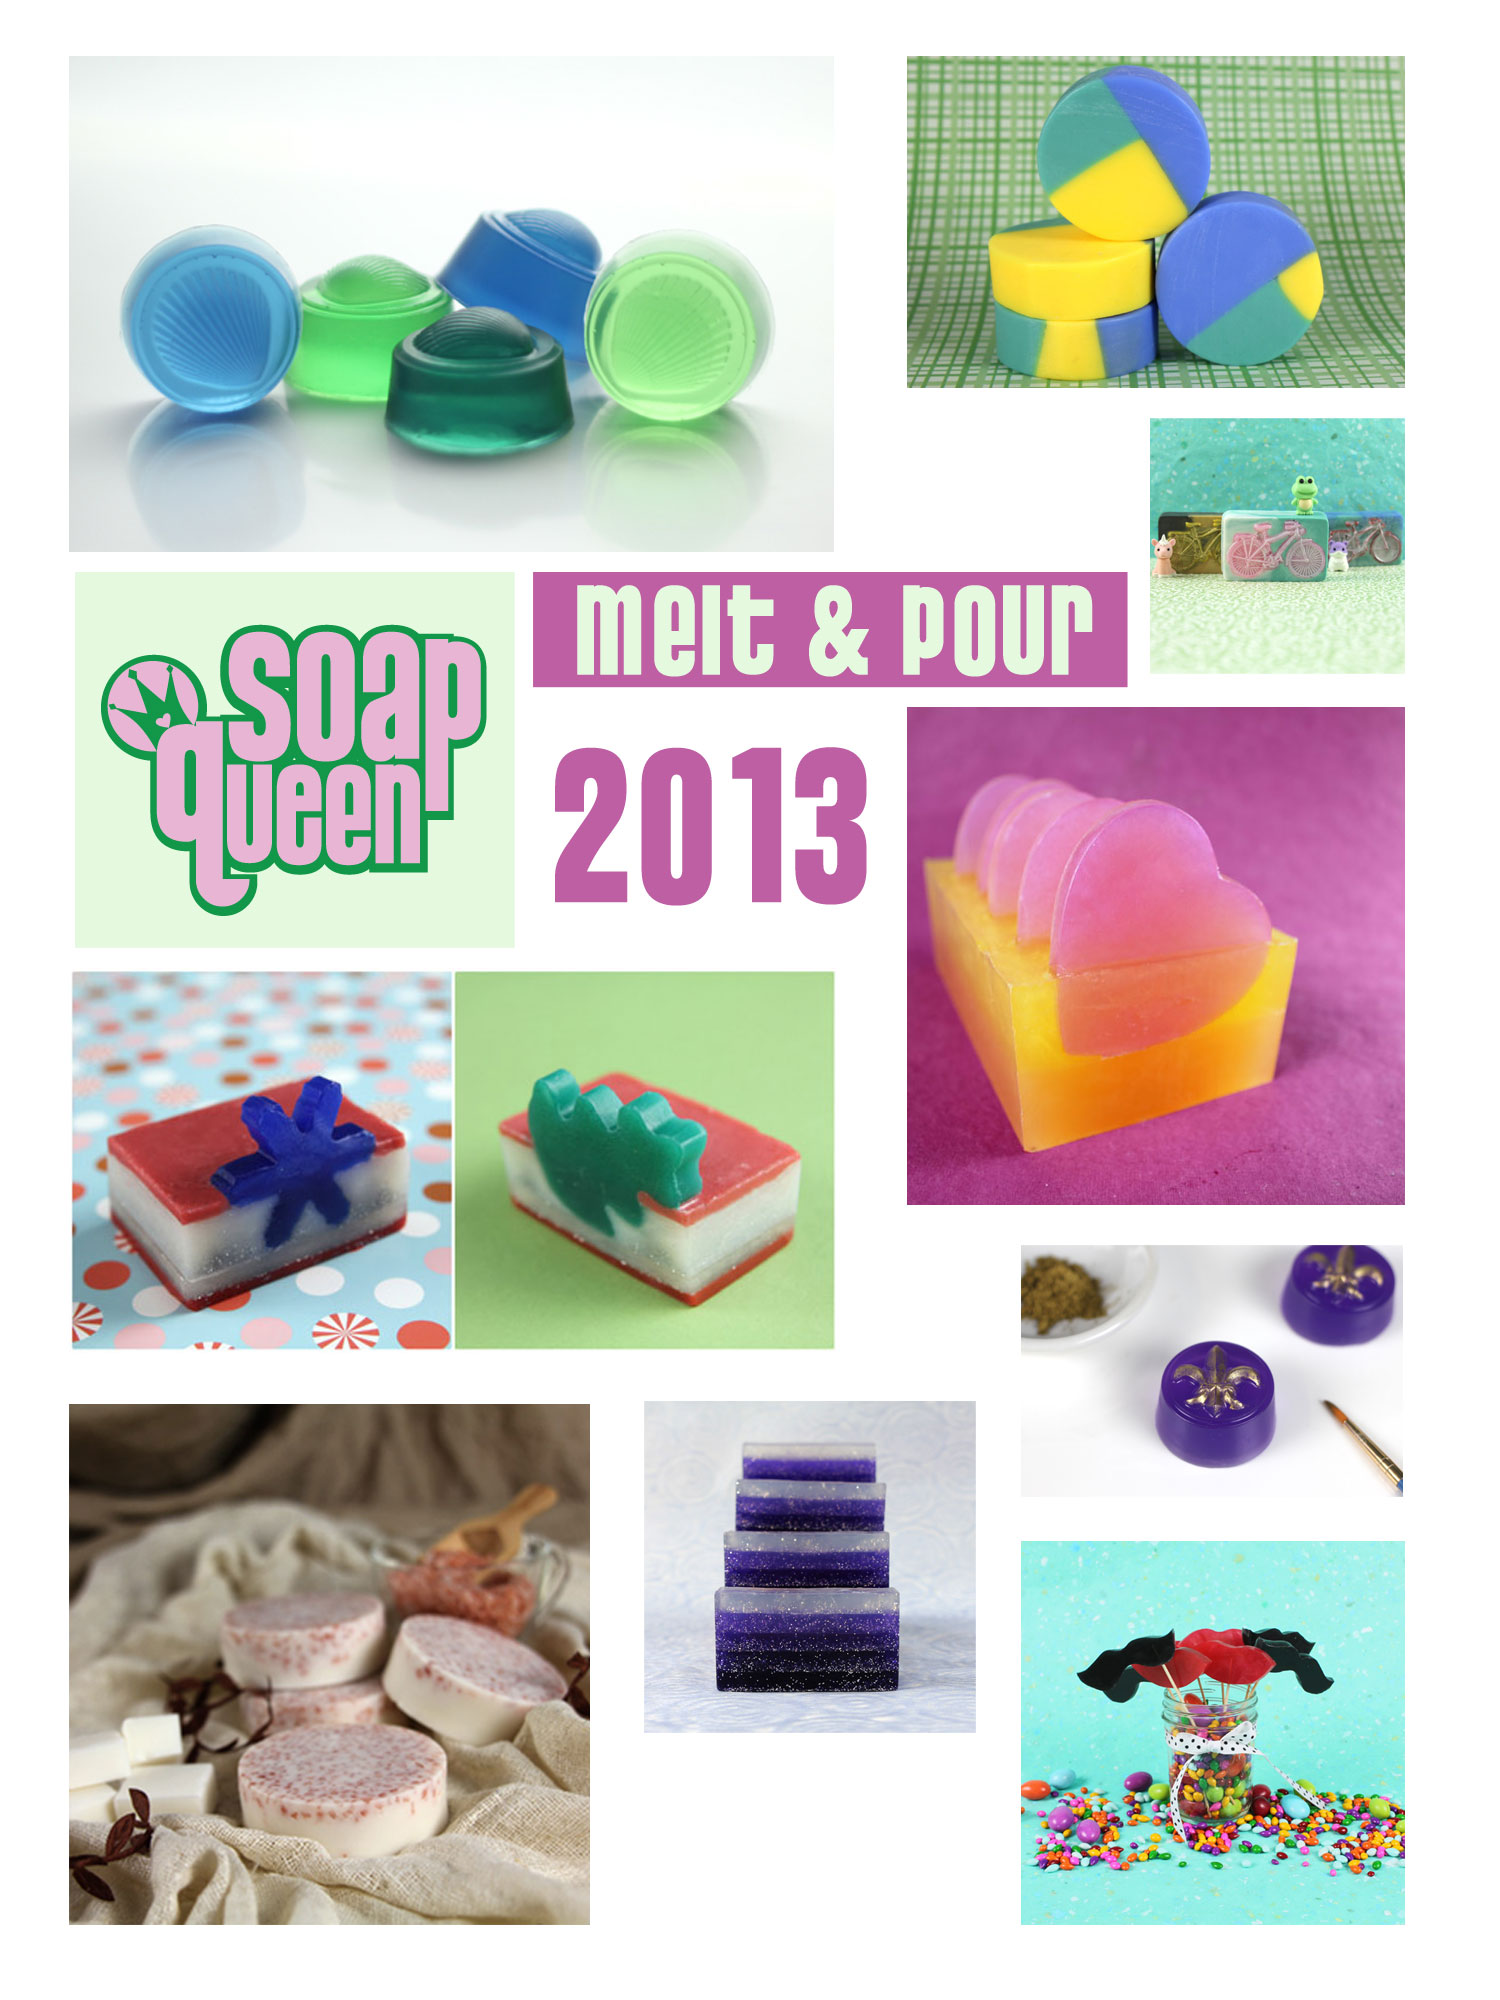 Soap Queen Melt & Pour Vol. 5, e-book